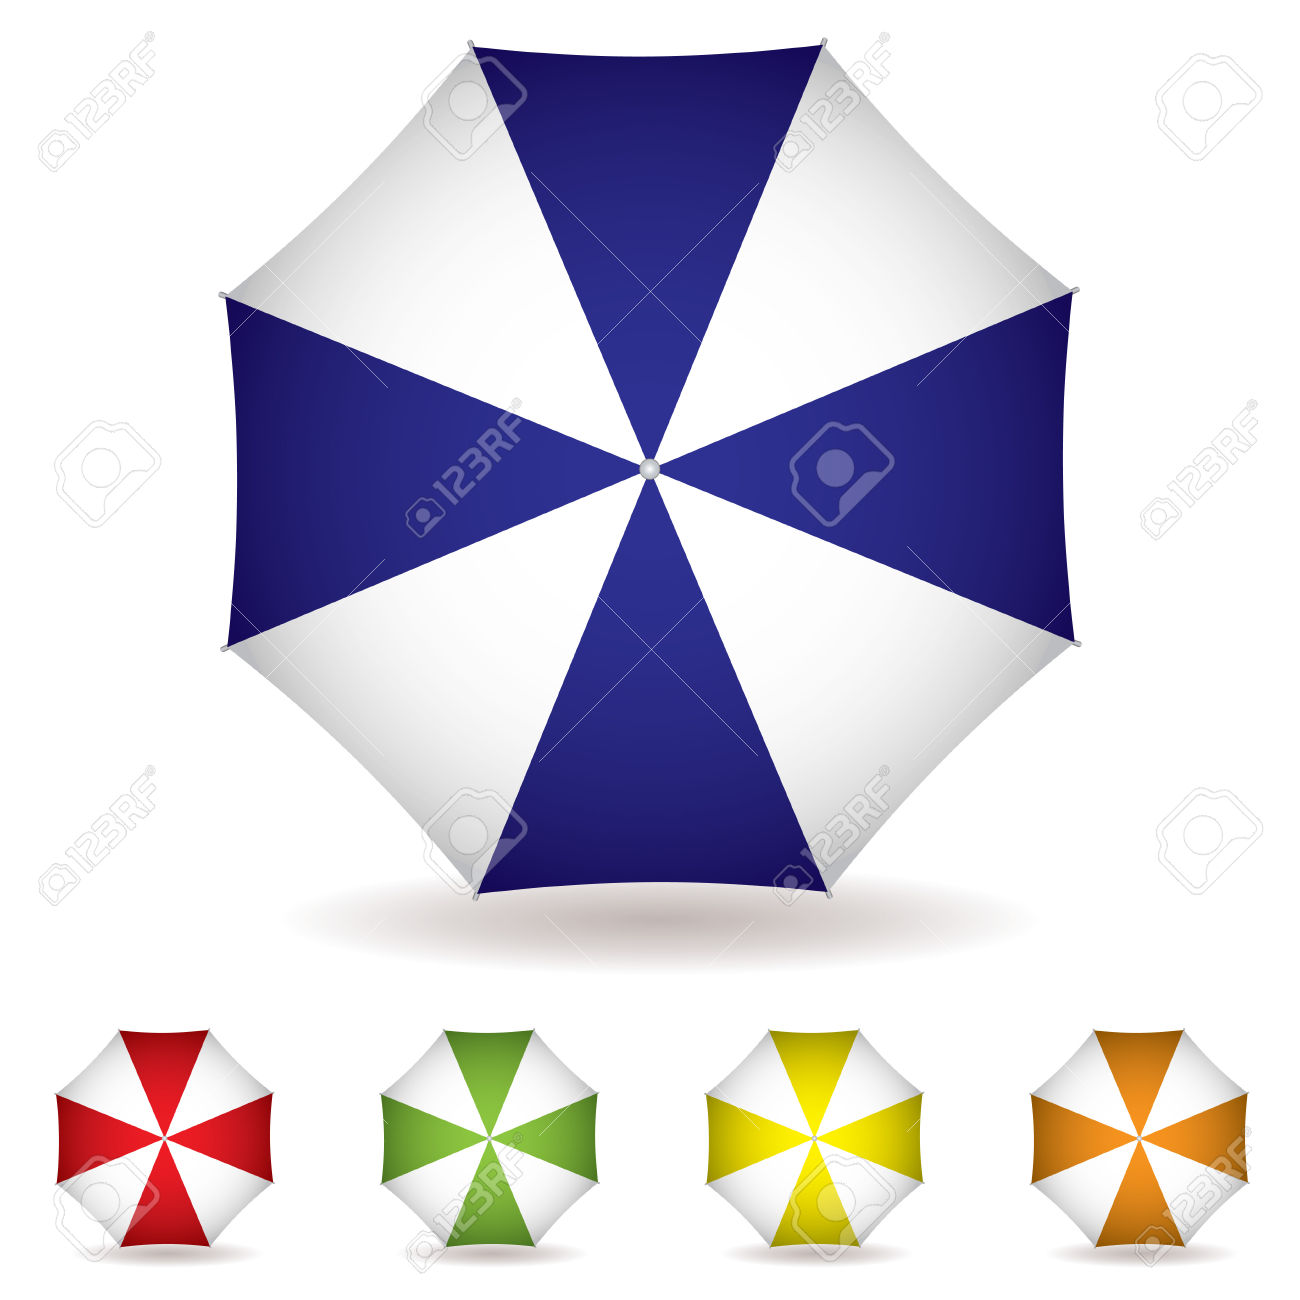 Umbrella Concept With A View From The Top And Multiple Colors.